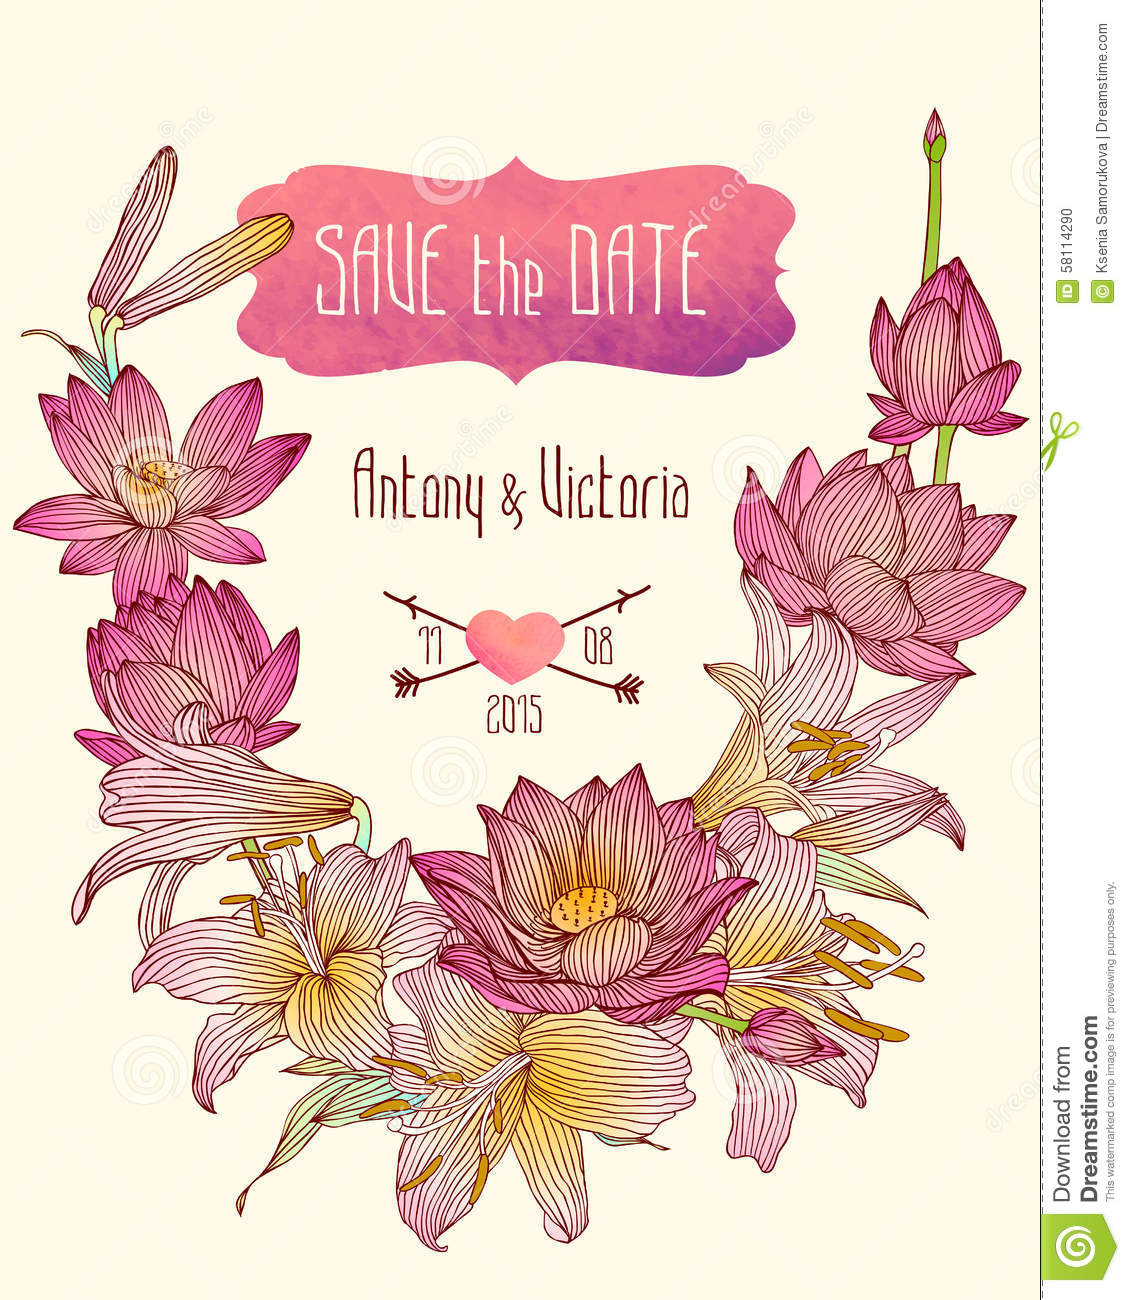 wedding invitation save the date template lotus and royal wedding invitation save the date template lotus and royal lily flowers